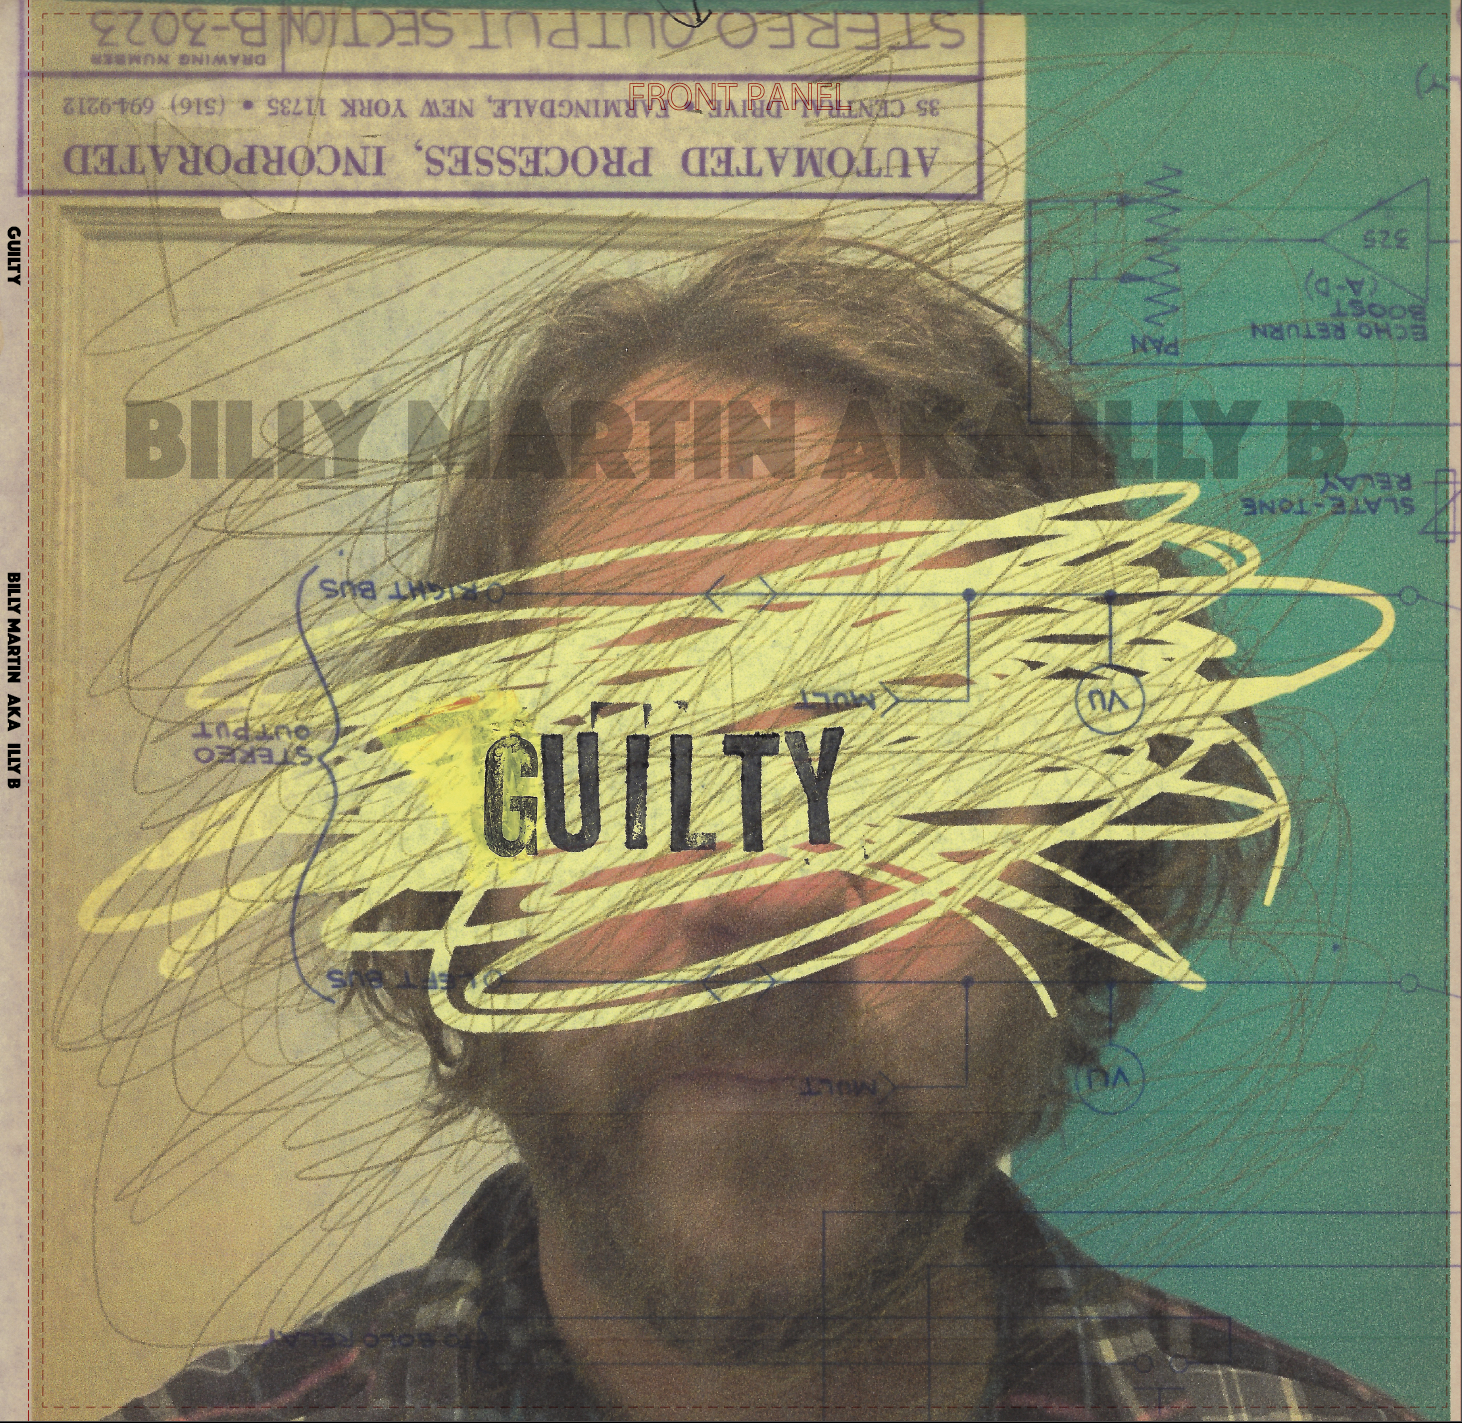 GUILTY cover image